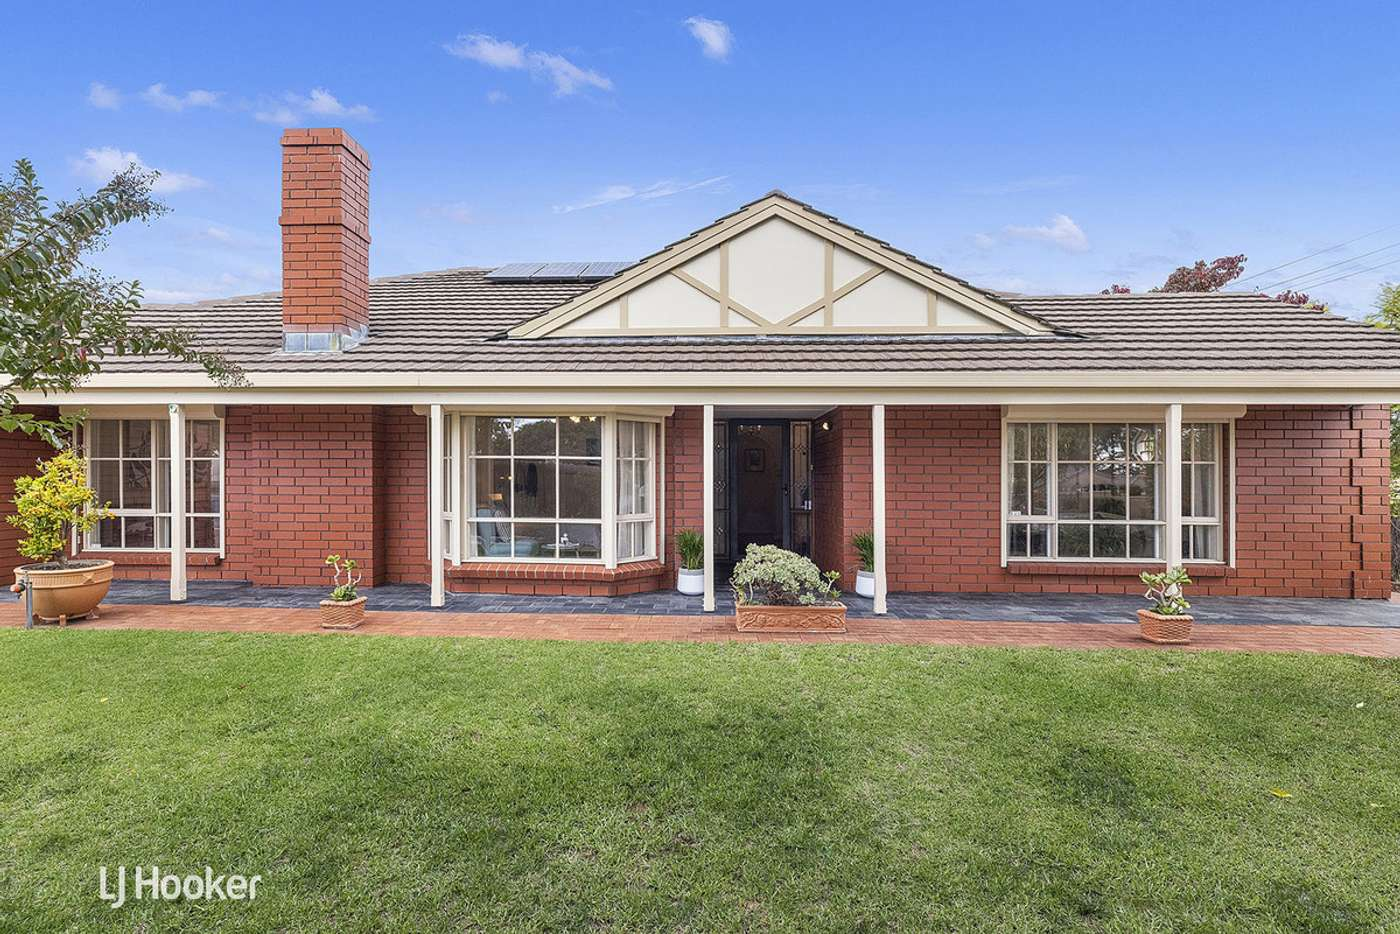 Main view of Homely house listing, 348 Kensington Road, Erindale SA 5066